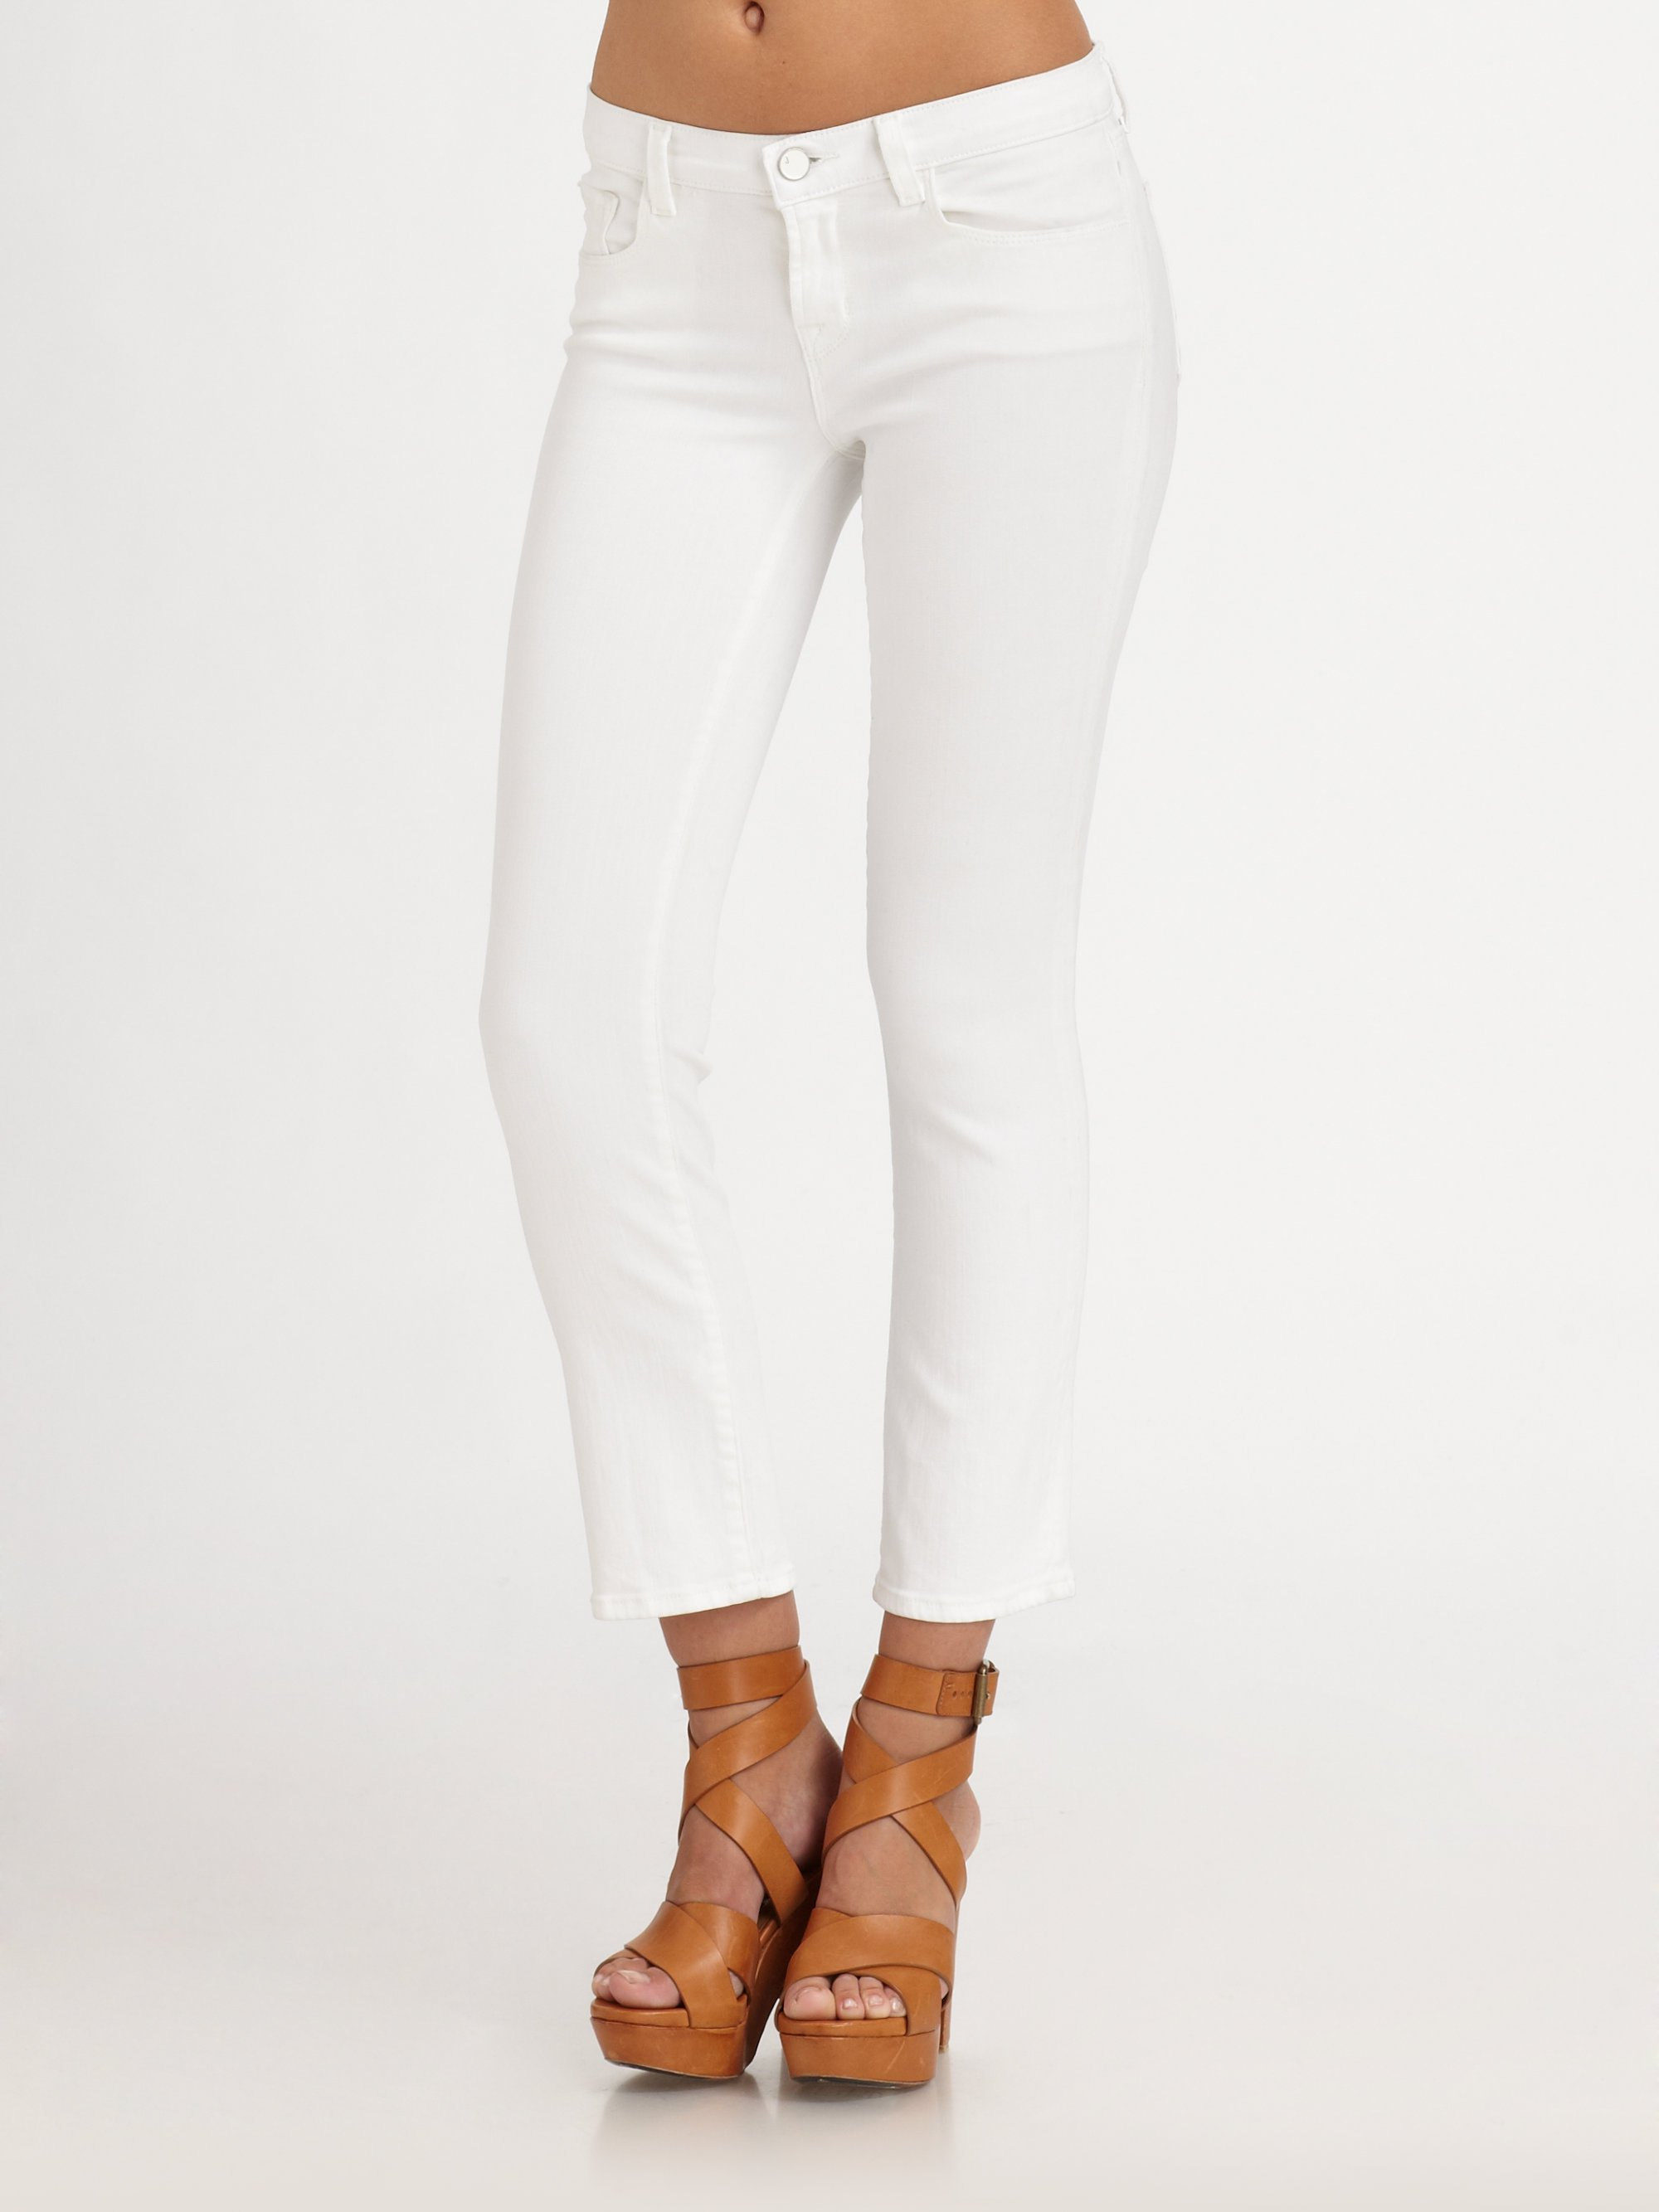 cropped denim jeans - White J Brand Buy Cheap With Credit Card View Online Free Shipping Top Quality Clearance Newest FpYtnjGJ